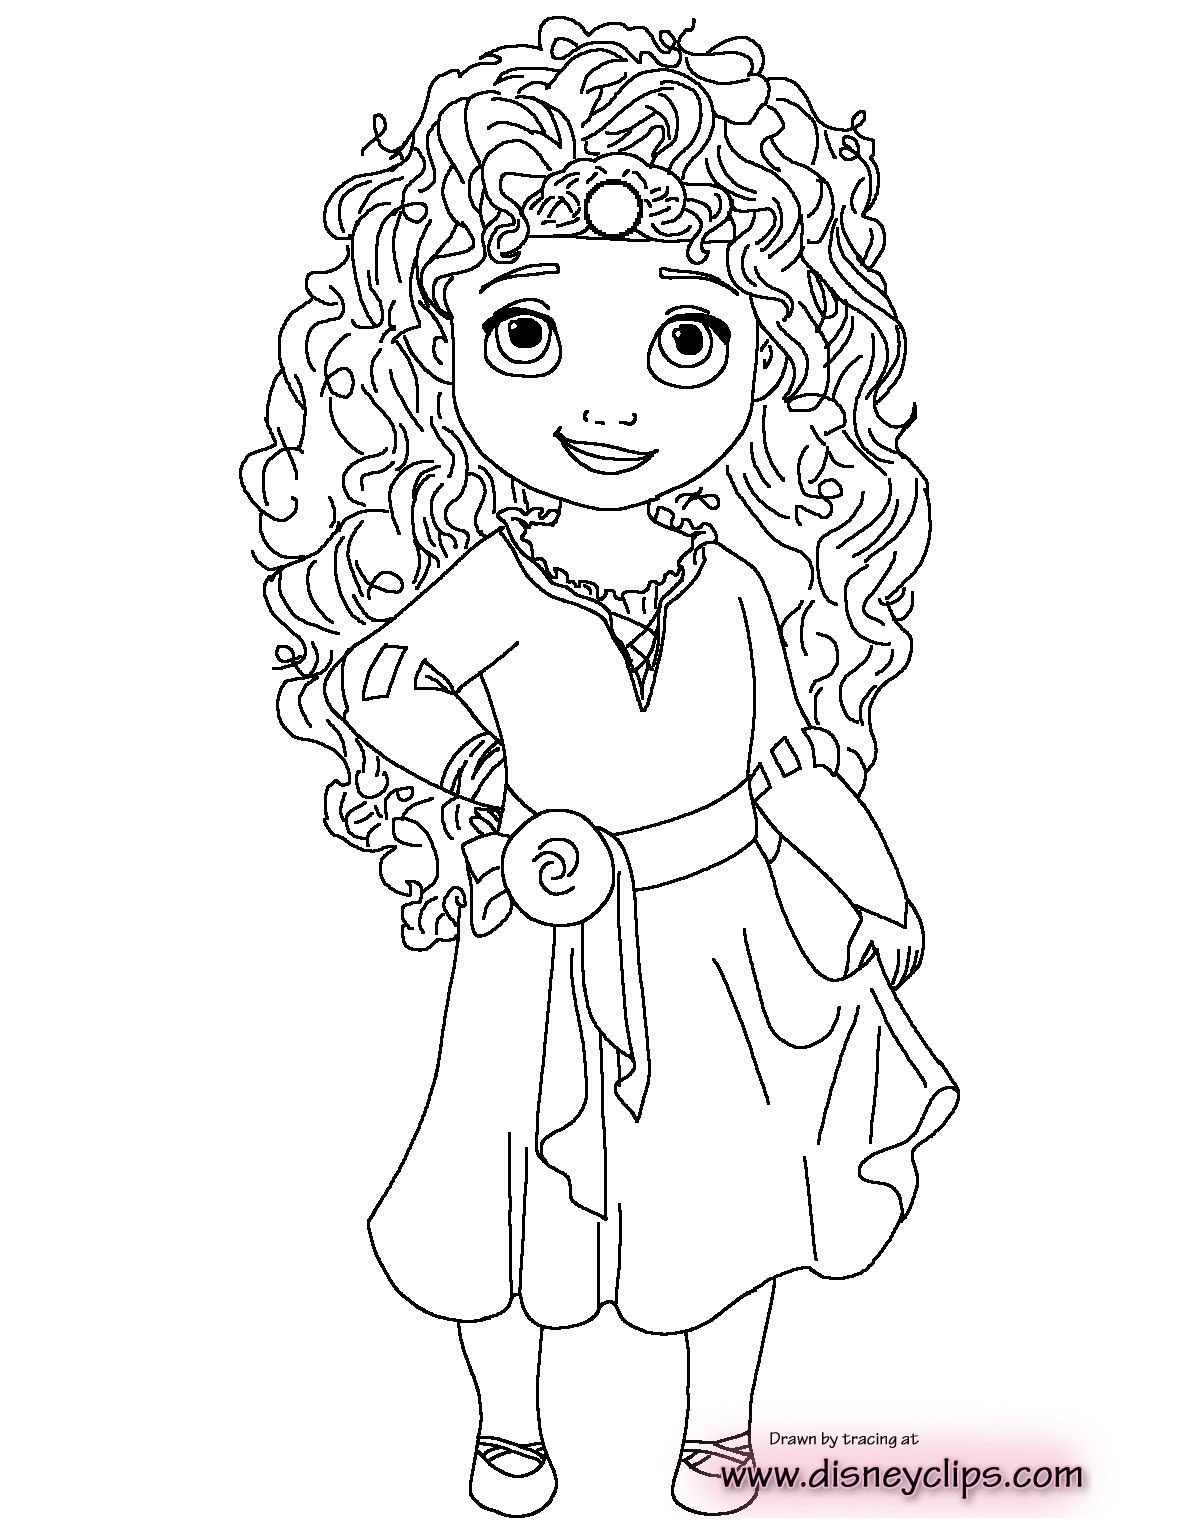 Coloring Pages Of Baby Princess From The Thousand Images On The Web About Color Princess Coloring Pages Disney Princess Colors Disney Princess Coloring Pages